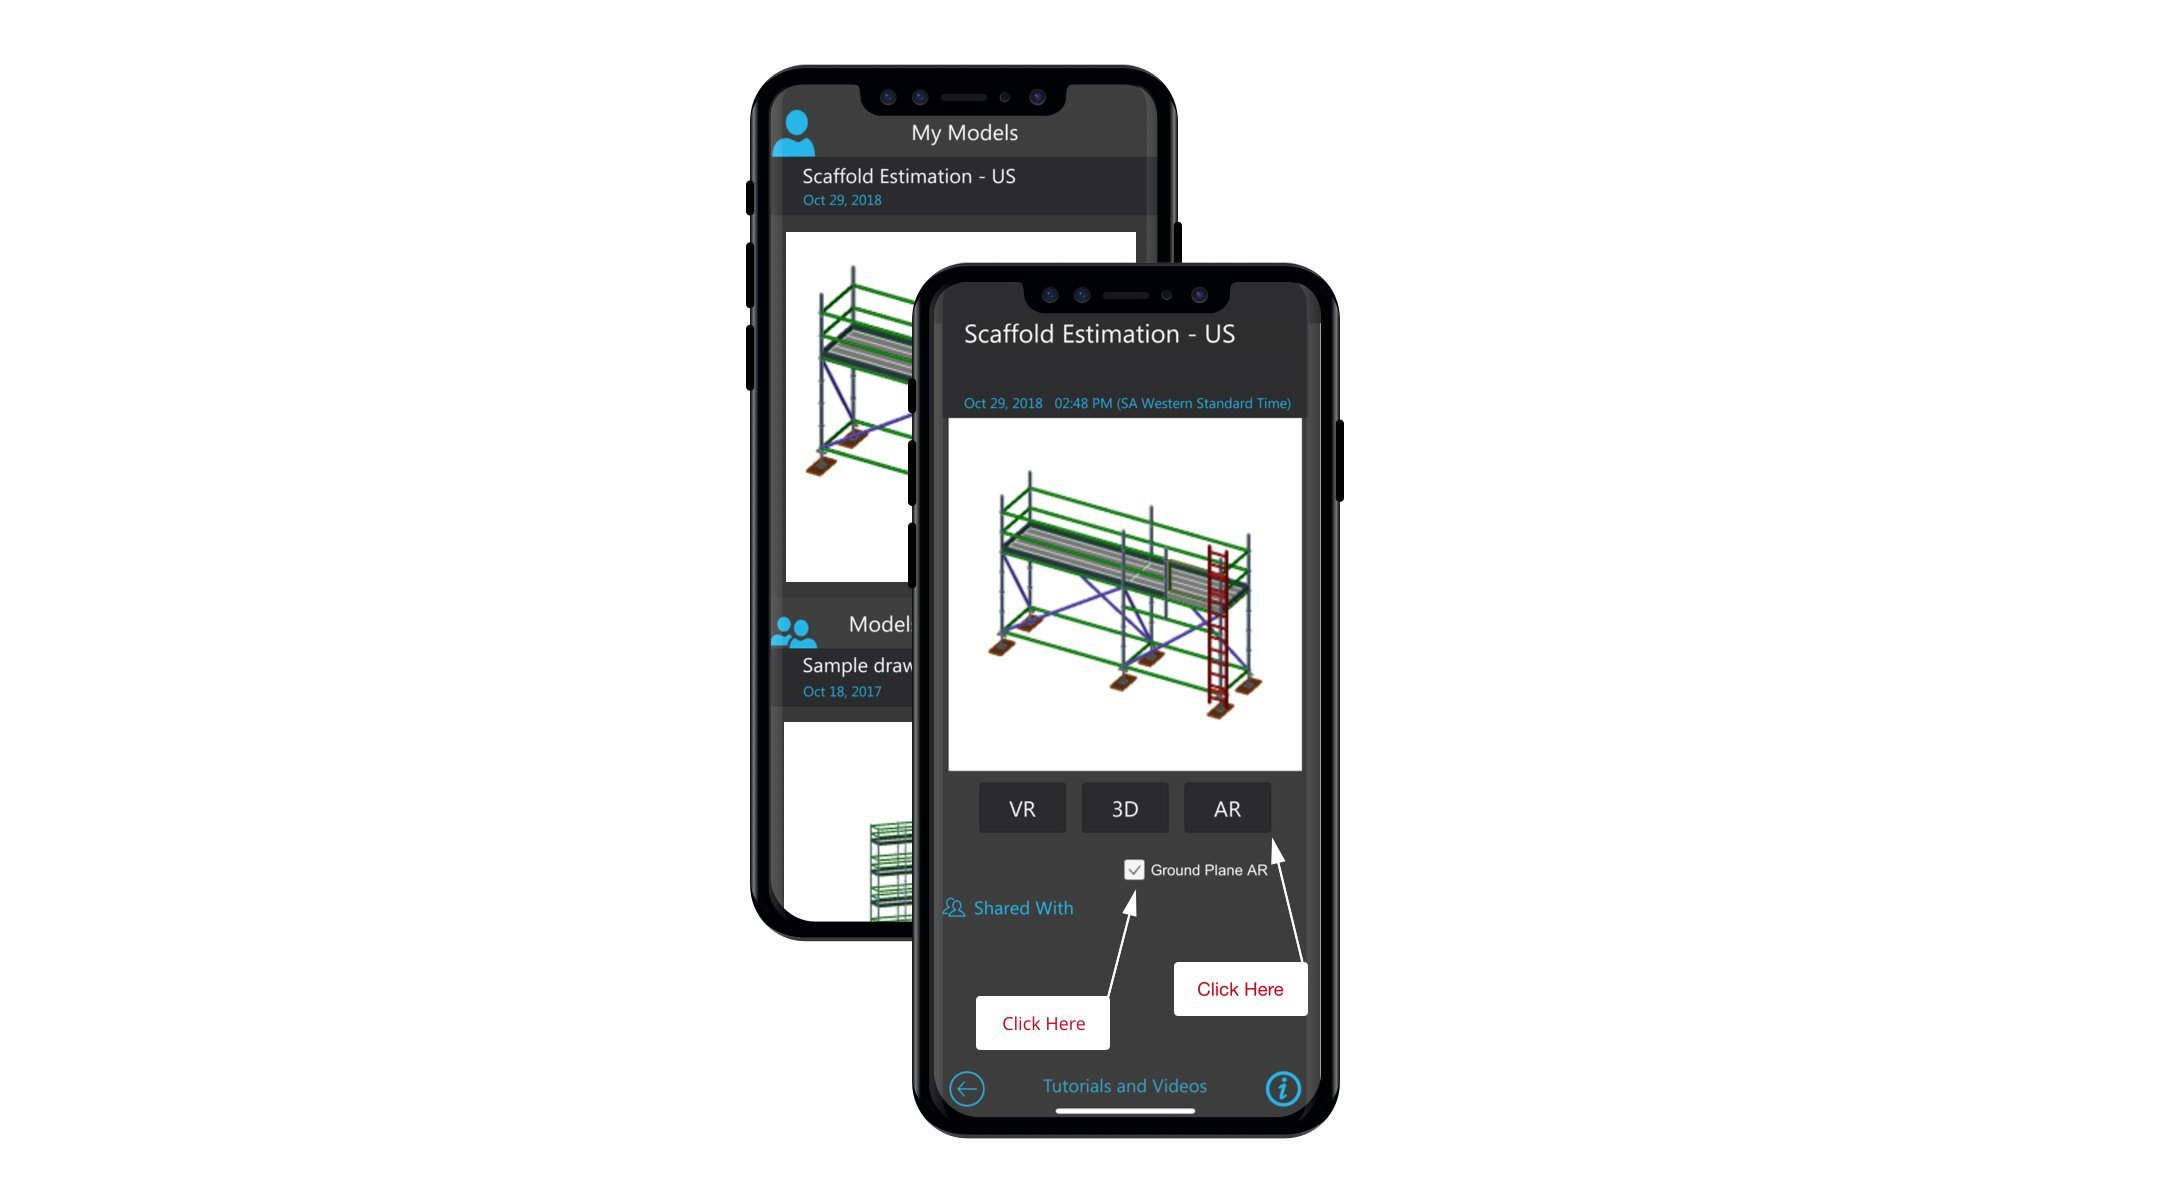 Avontus Viewer on a mobile device showing a scaffolding drawing with the option to select AR mode.